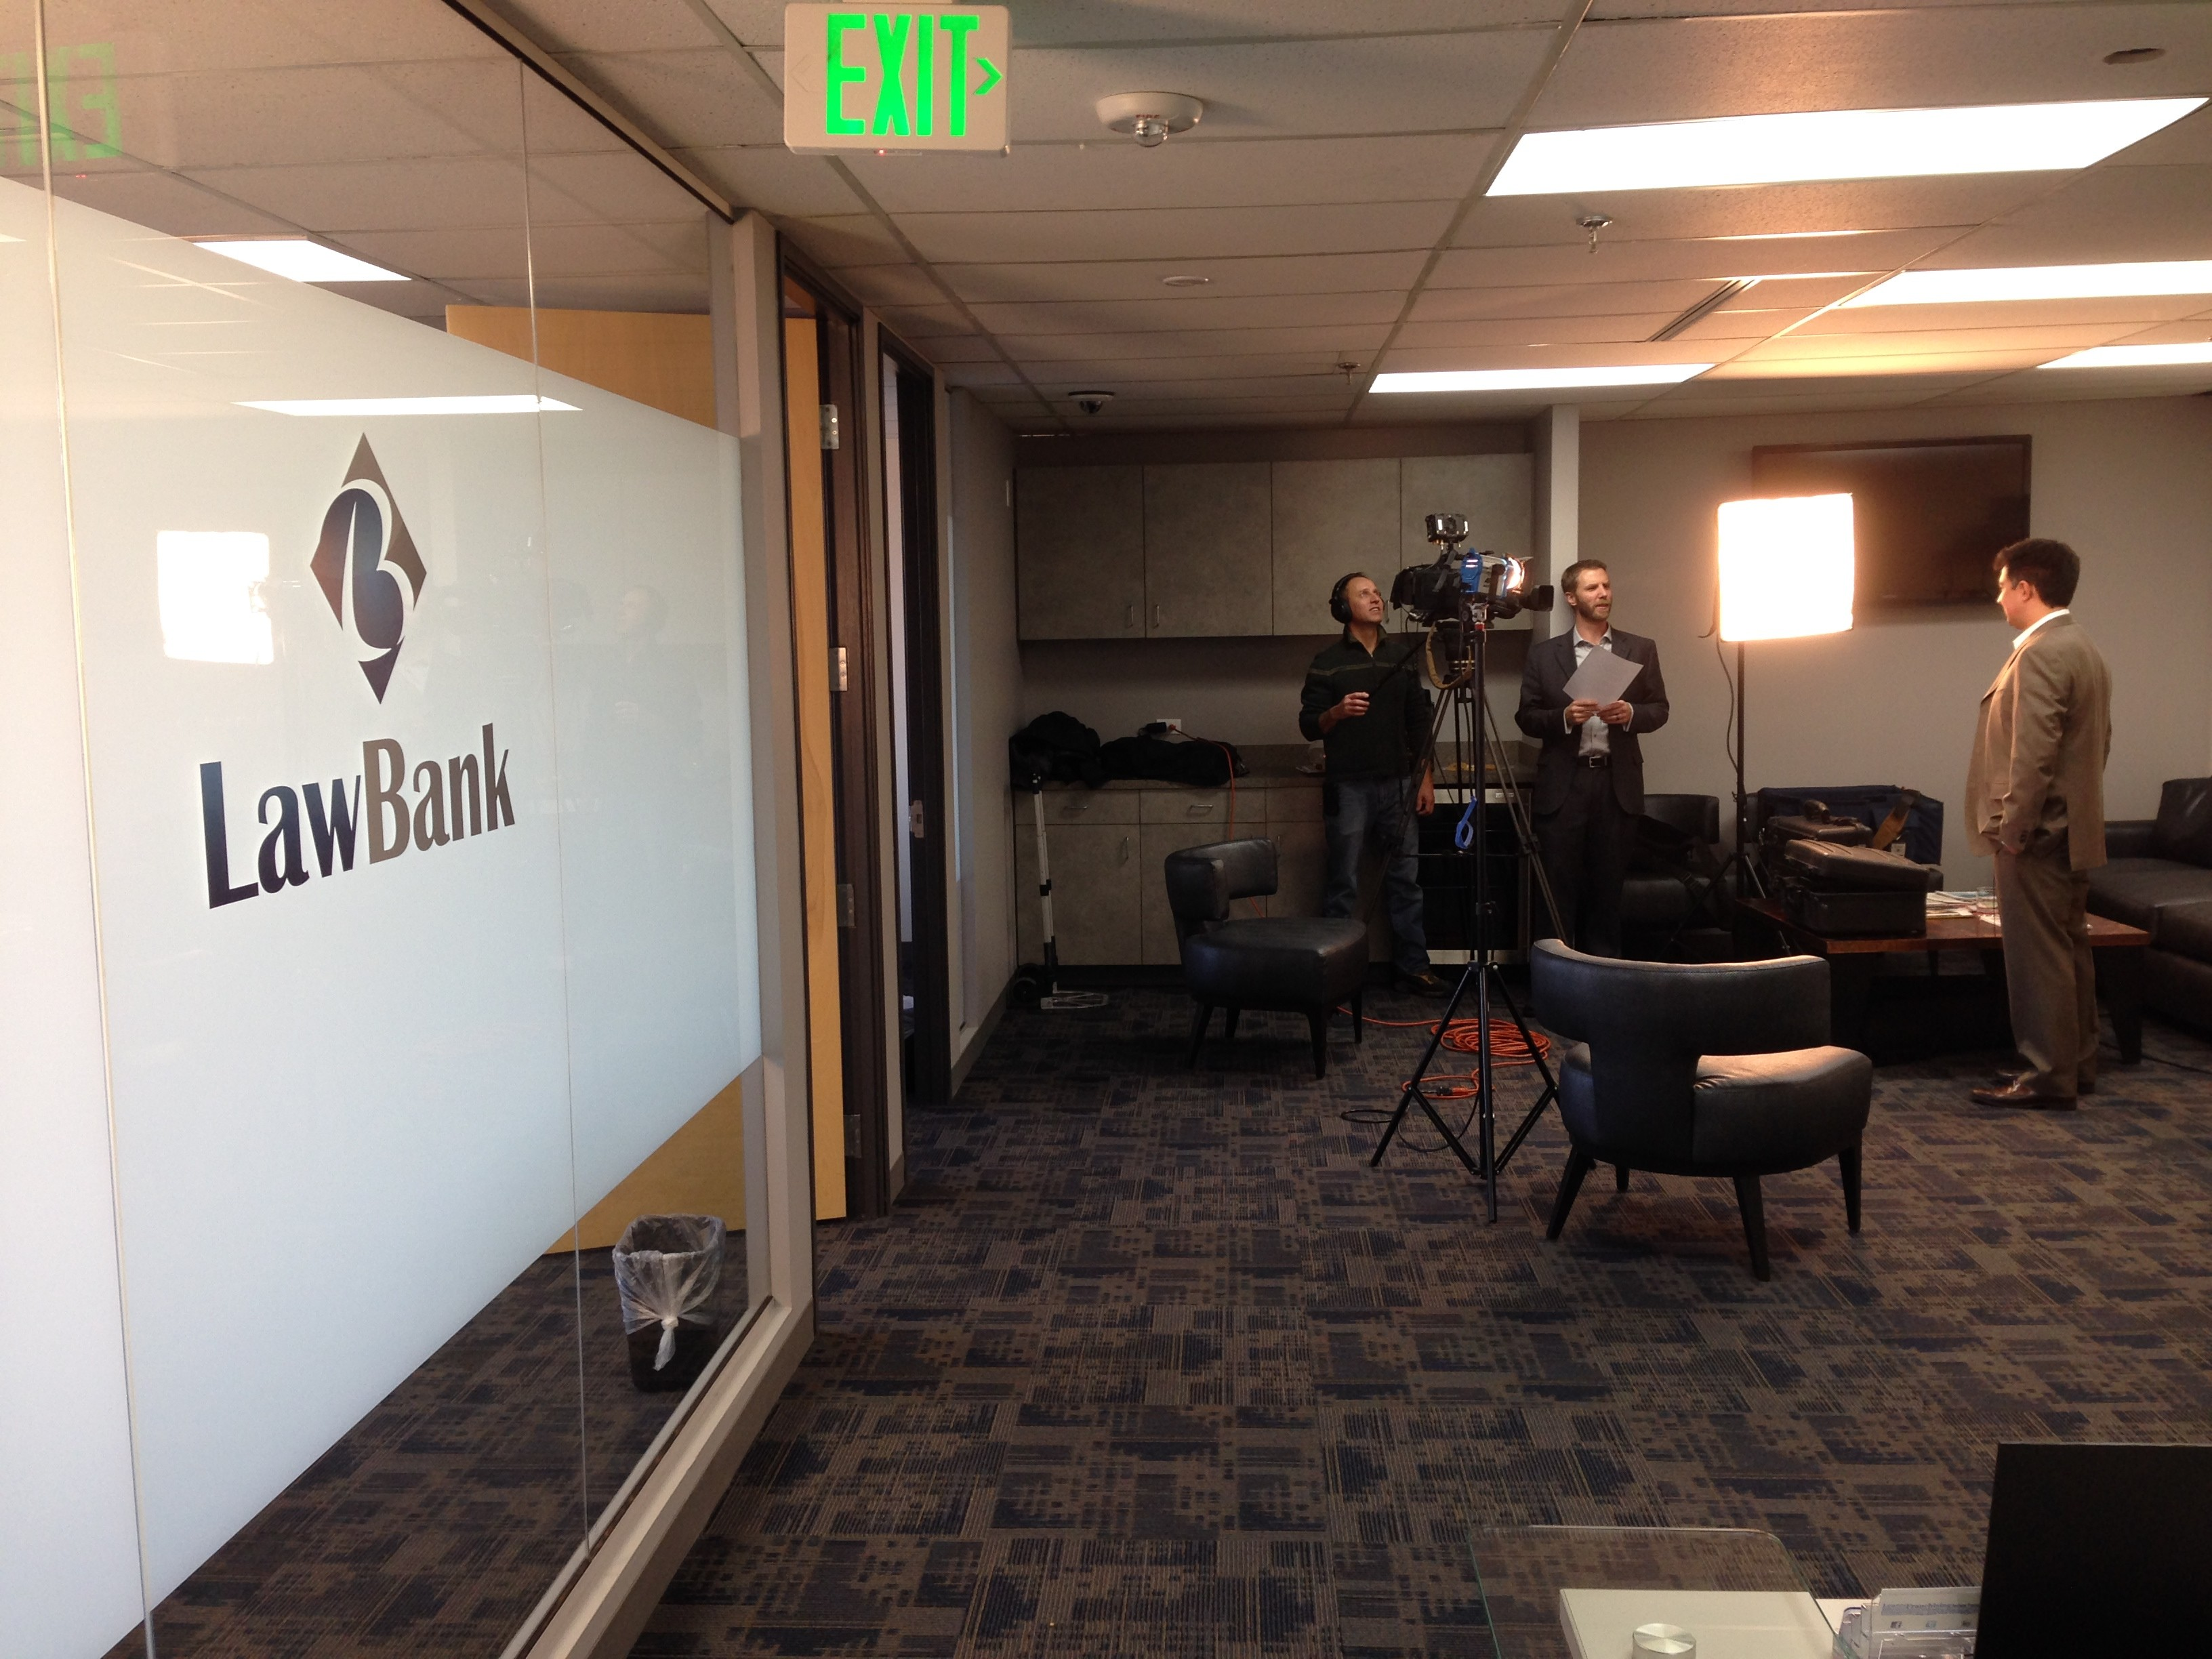 Behind the Scenes with the LawBank Video Campaign